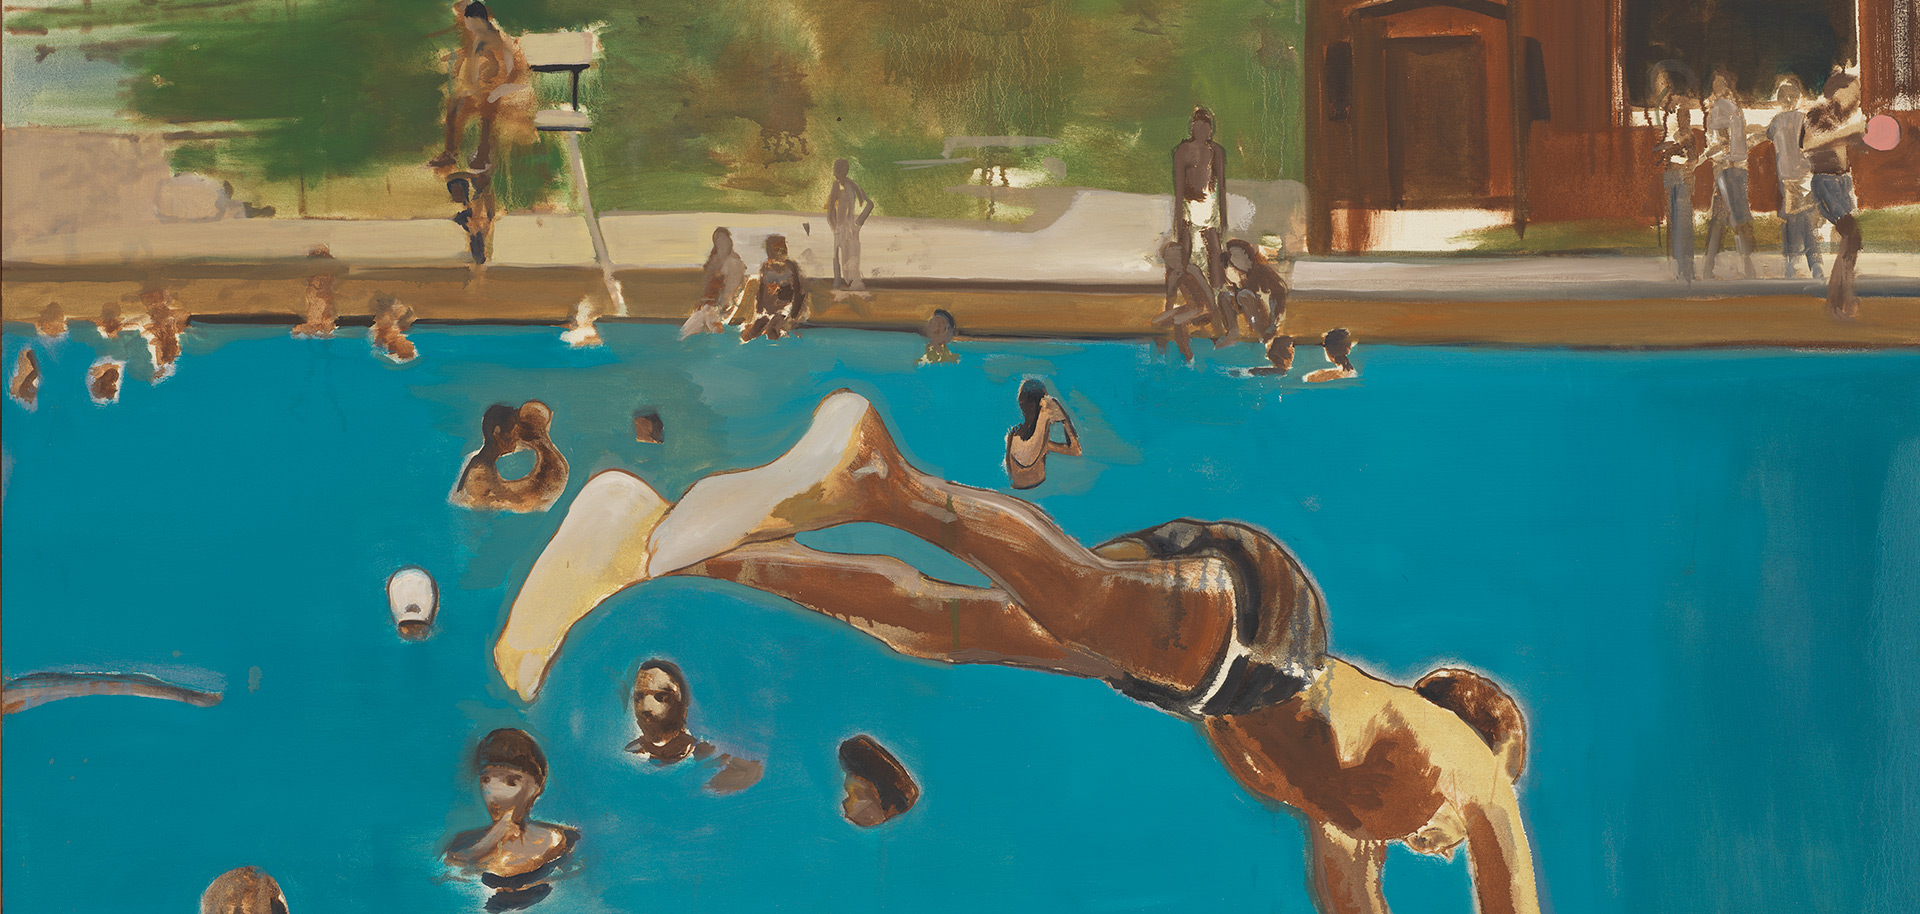 A detail from a painting by Noah Davis, titled 1975 (8), dated 2013.